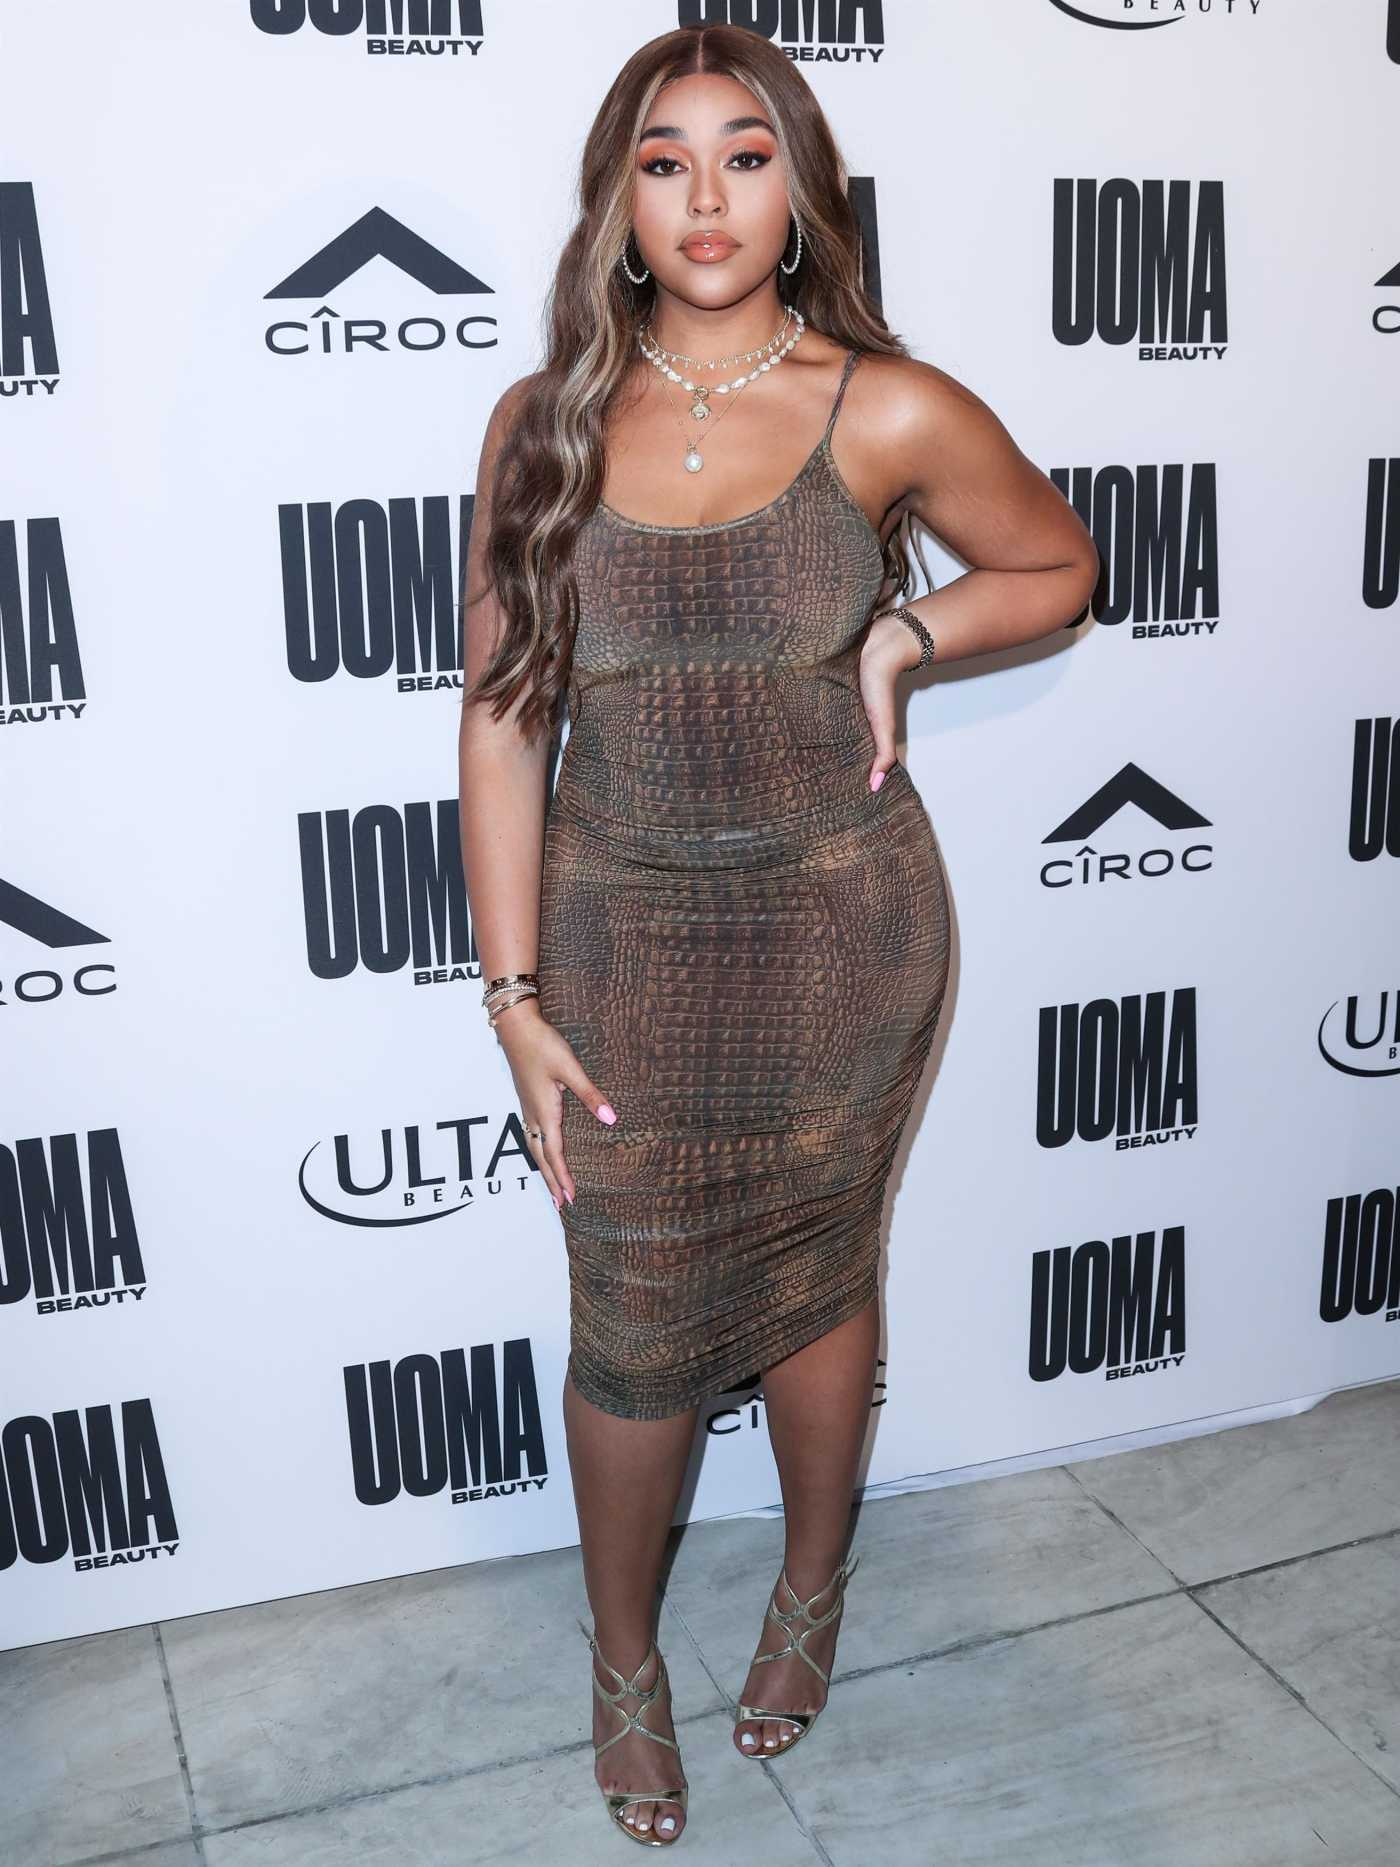 Jordyn Woods Attends the UOMA Beauty Summer Party in Beverly Hills 08/10/2019